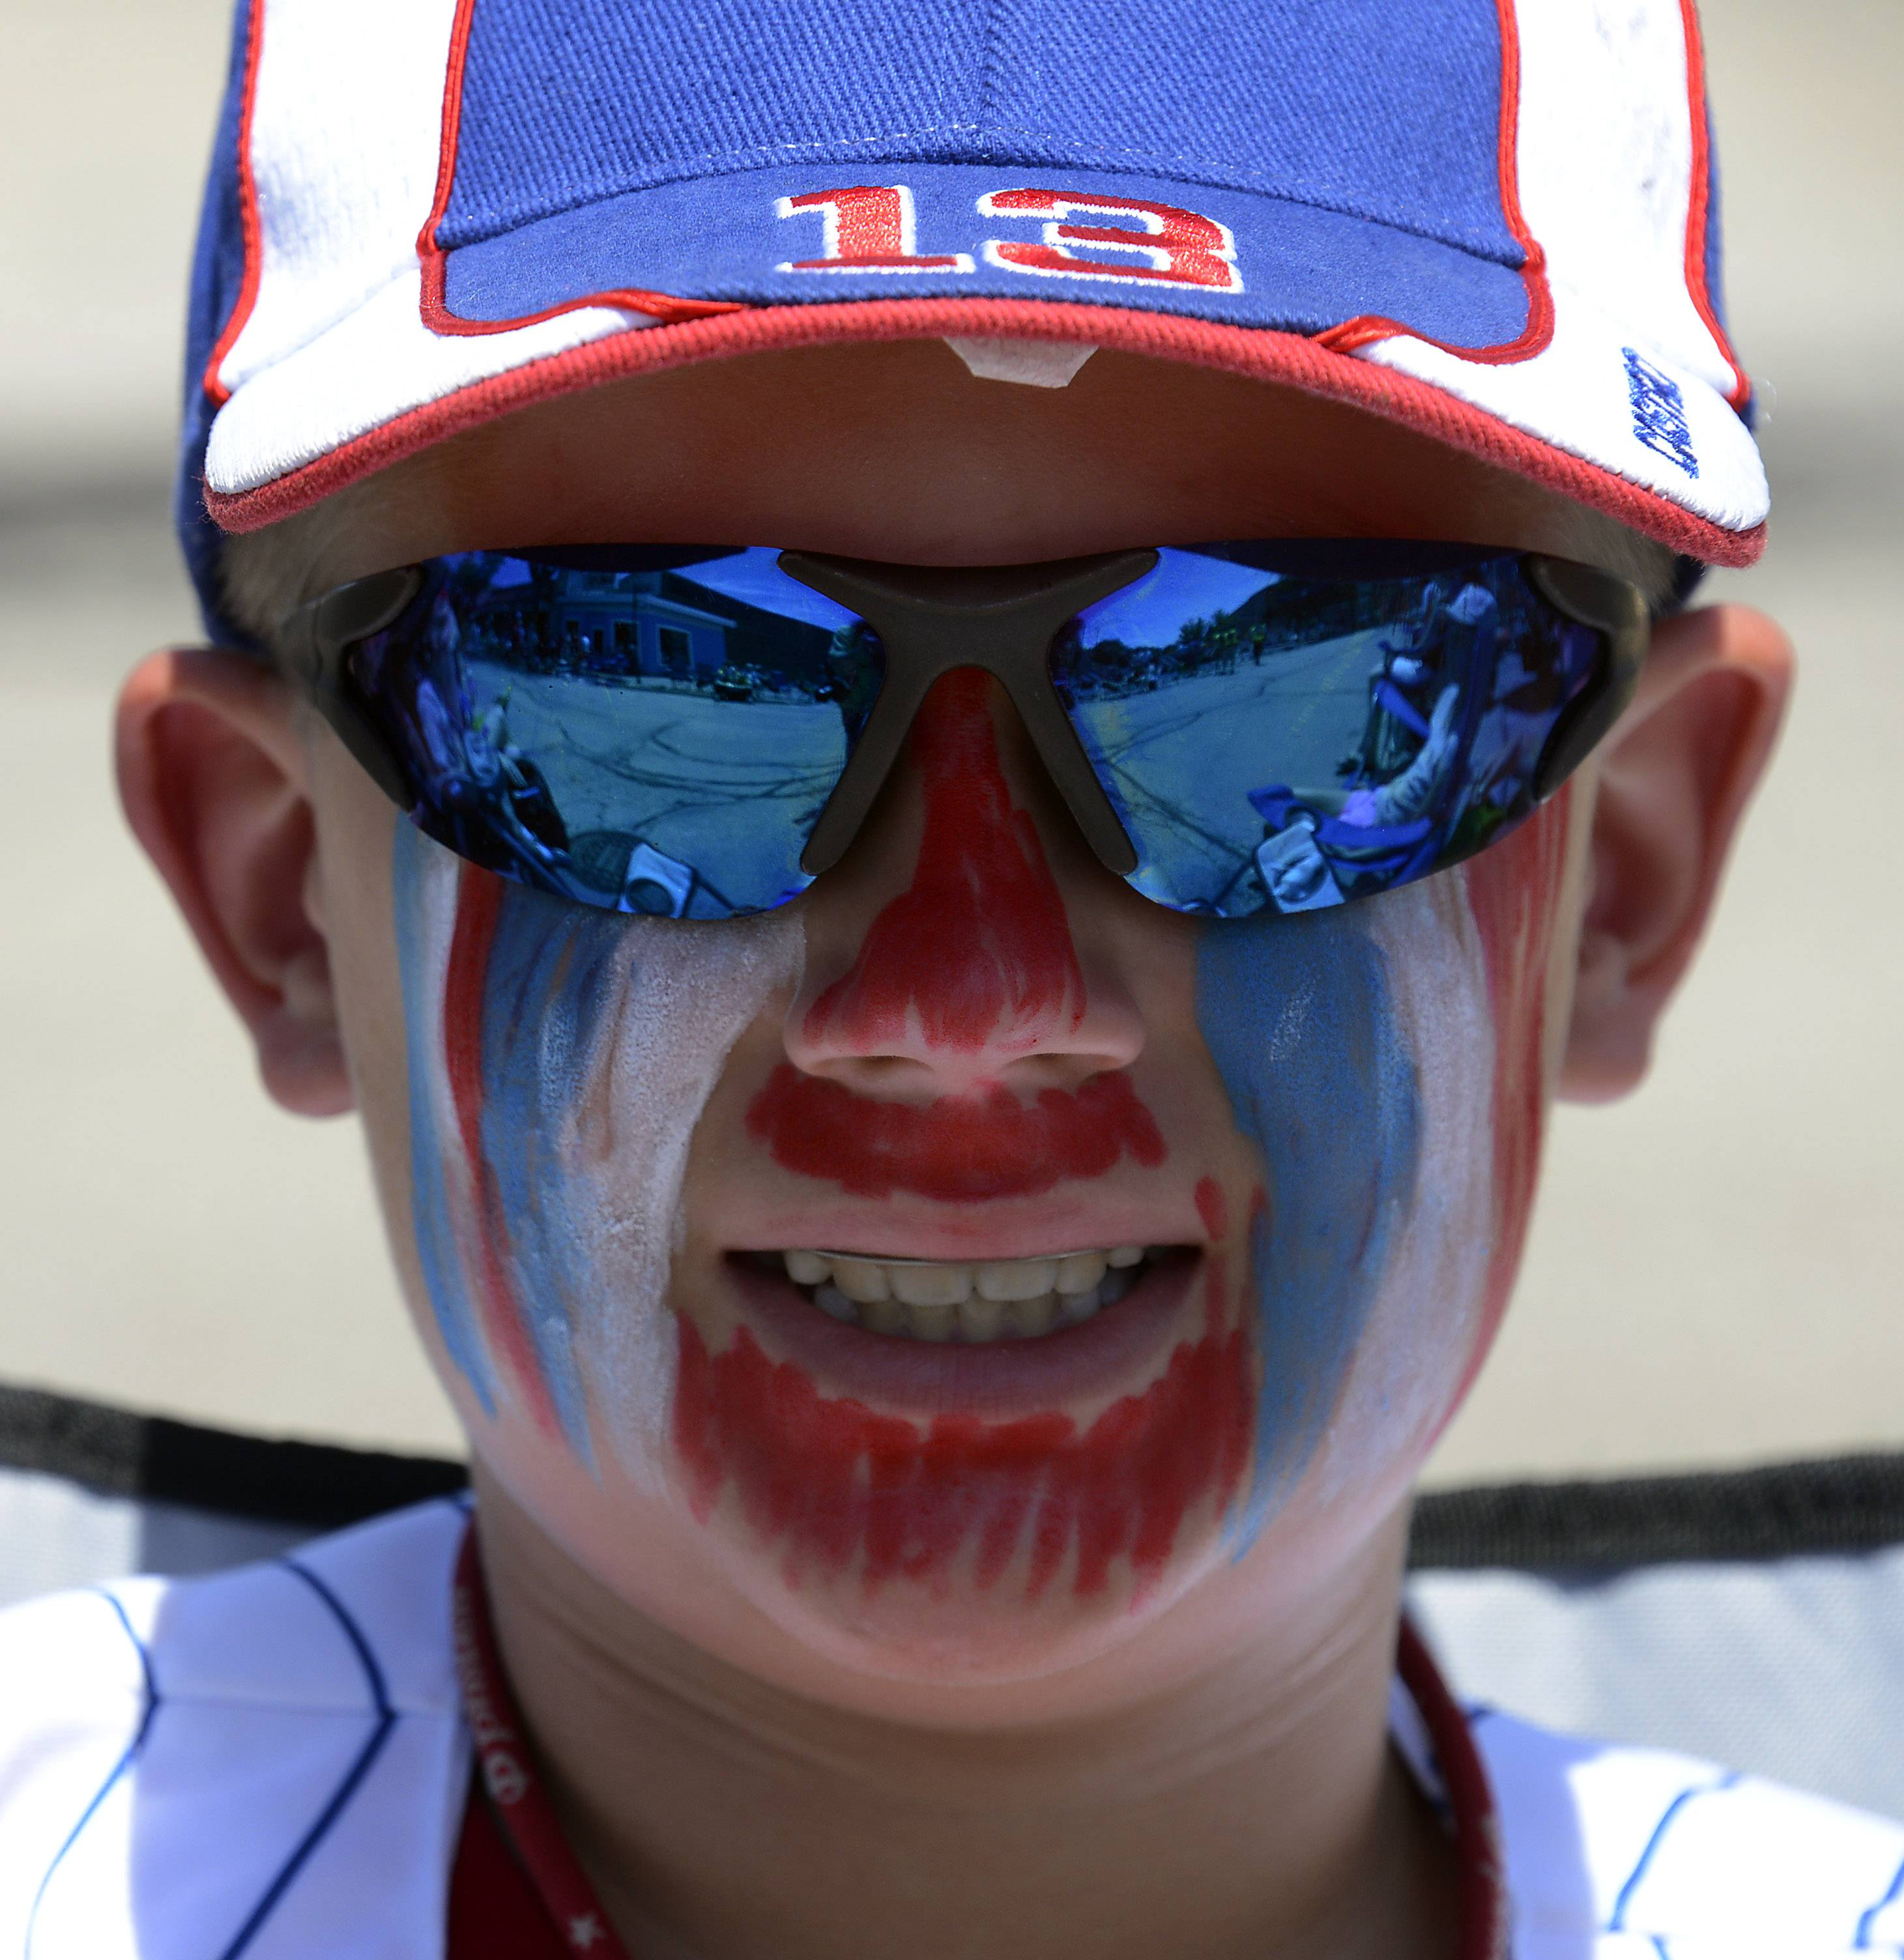 Peter Anast, 11, of Mount Prospect had his face painted for the Mount Prospect parade.